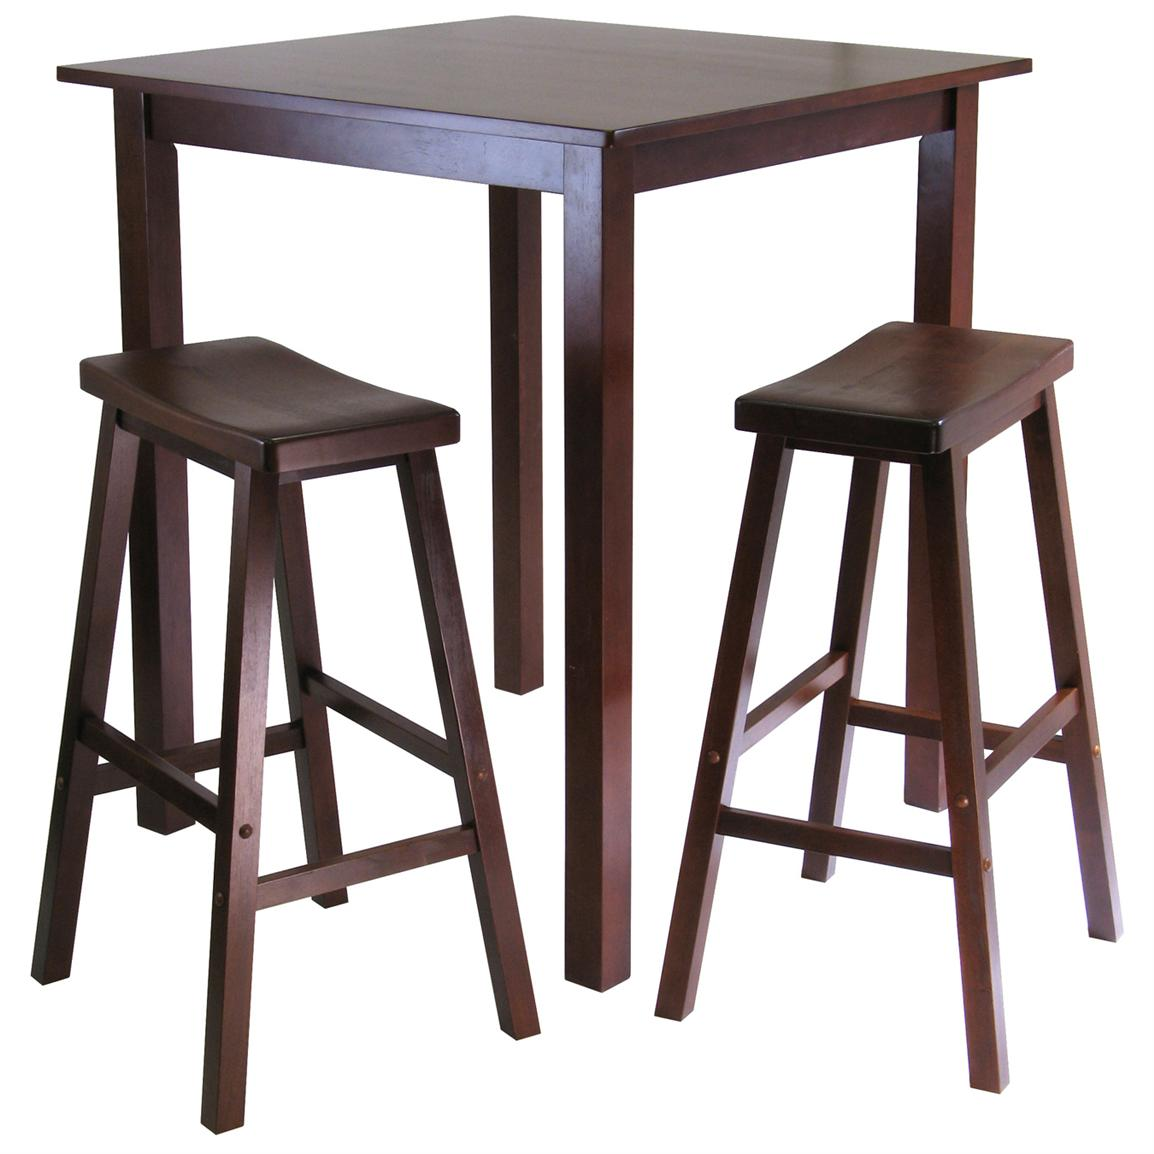 Pub tables and stools homesfeed for Small dining table with stools